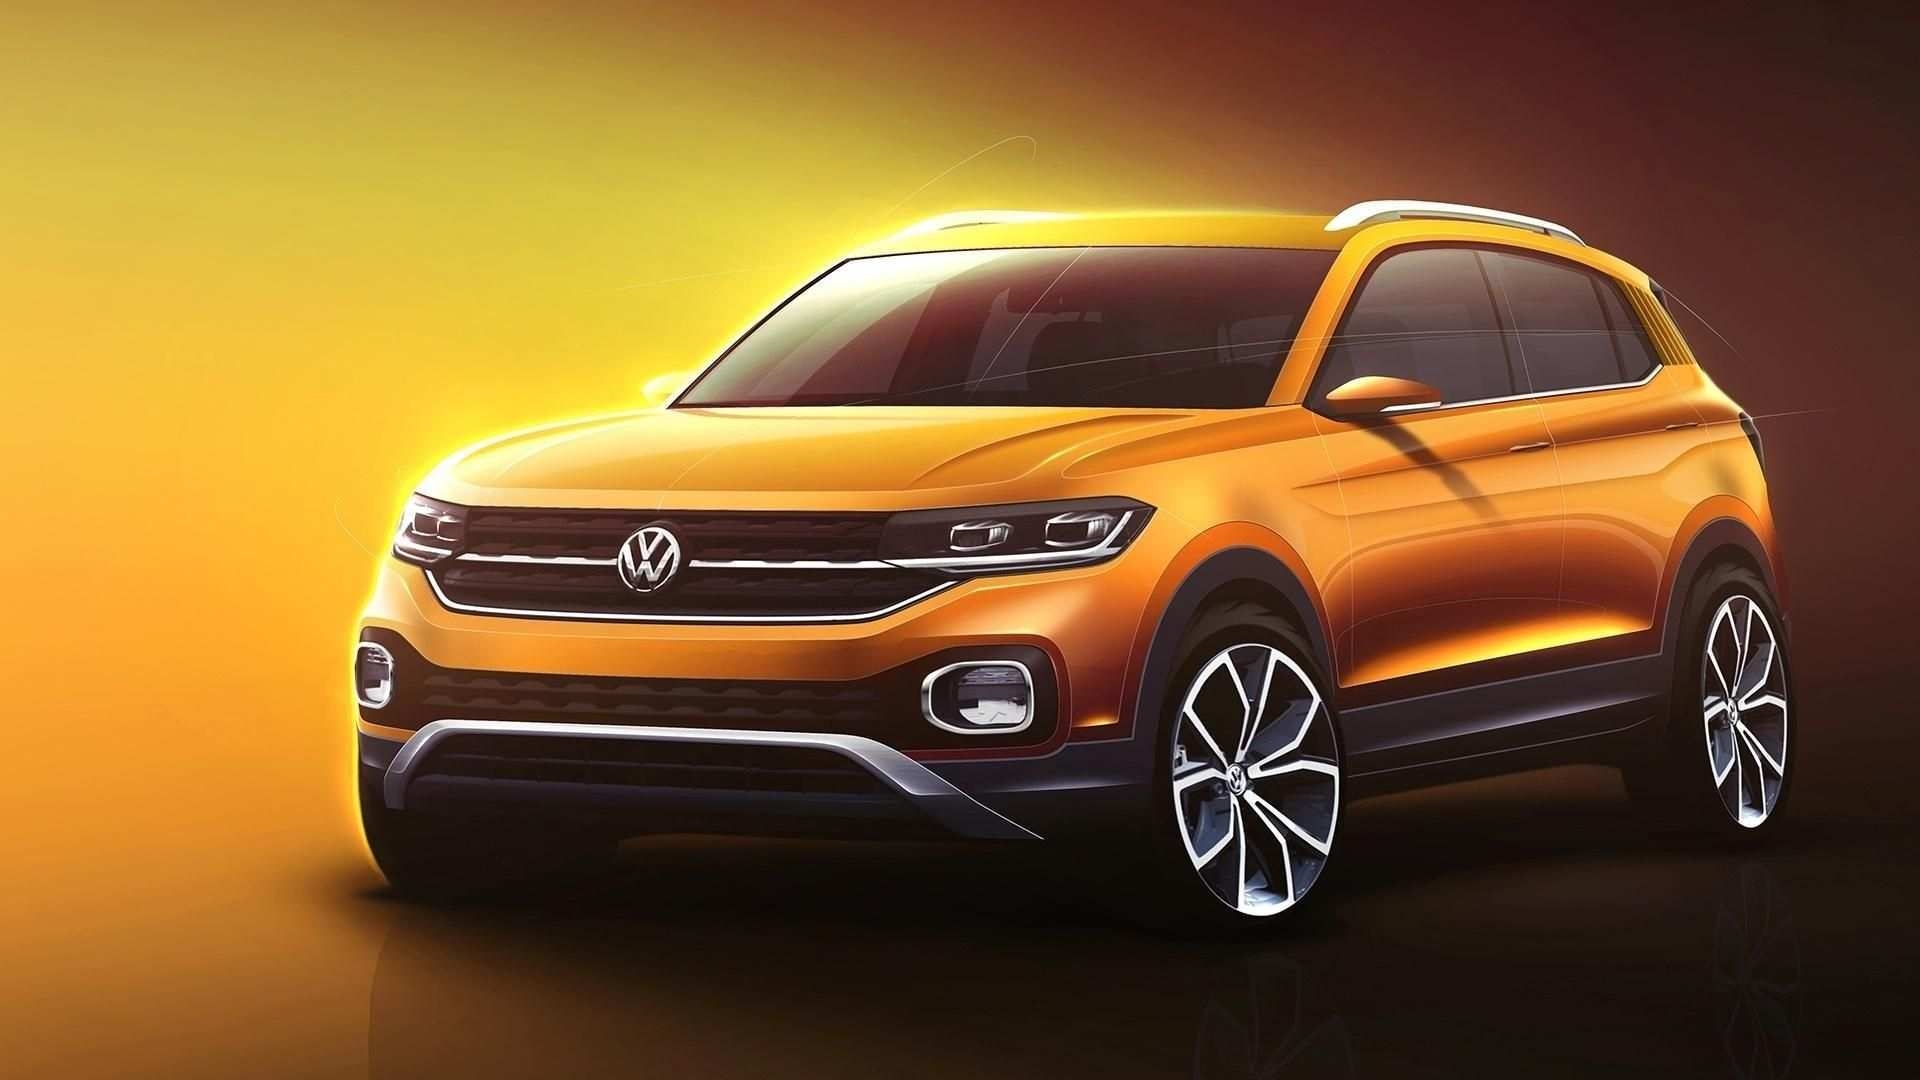 85 The Best Volkswagen Linha 2020 Overview